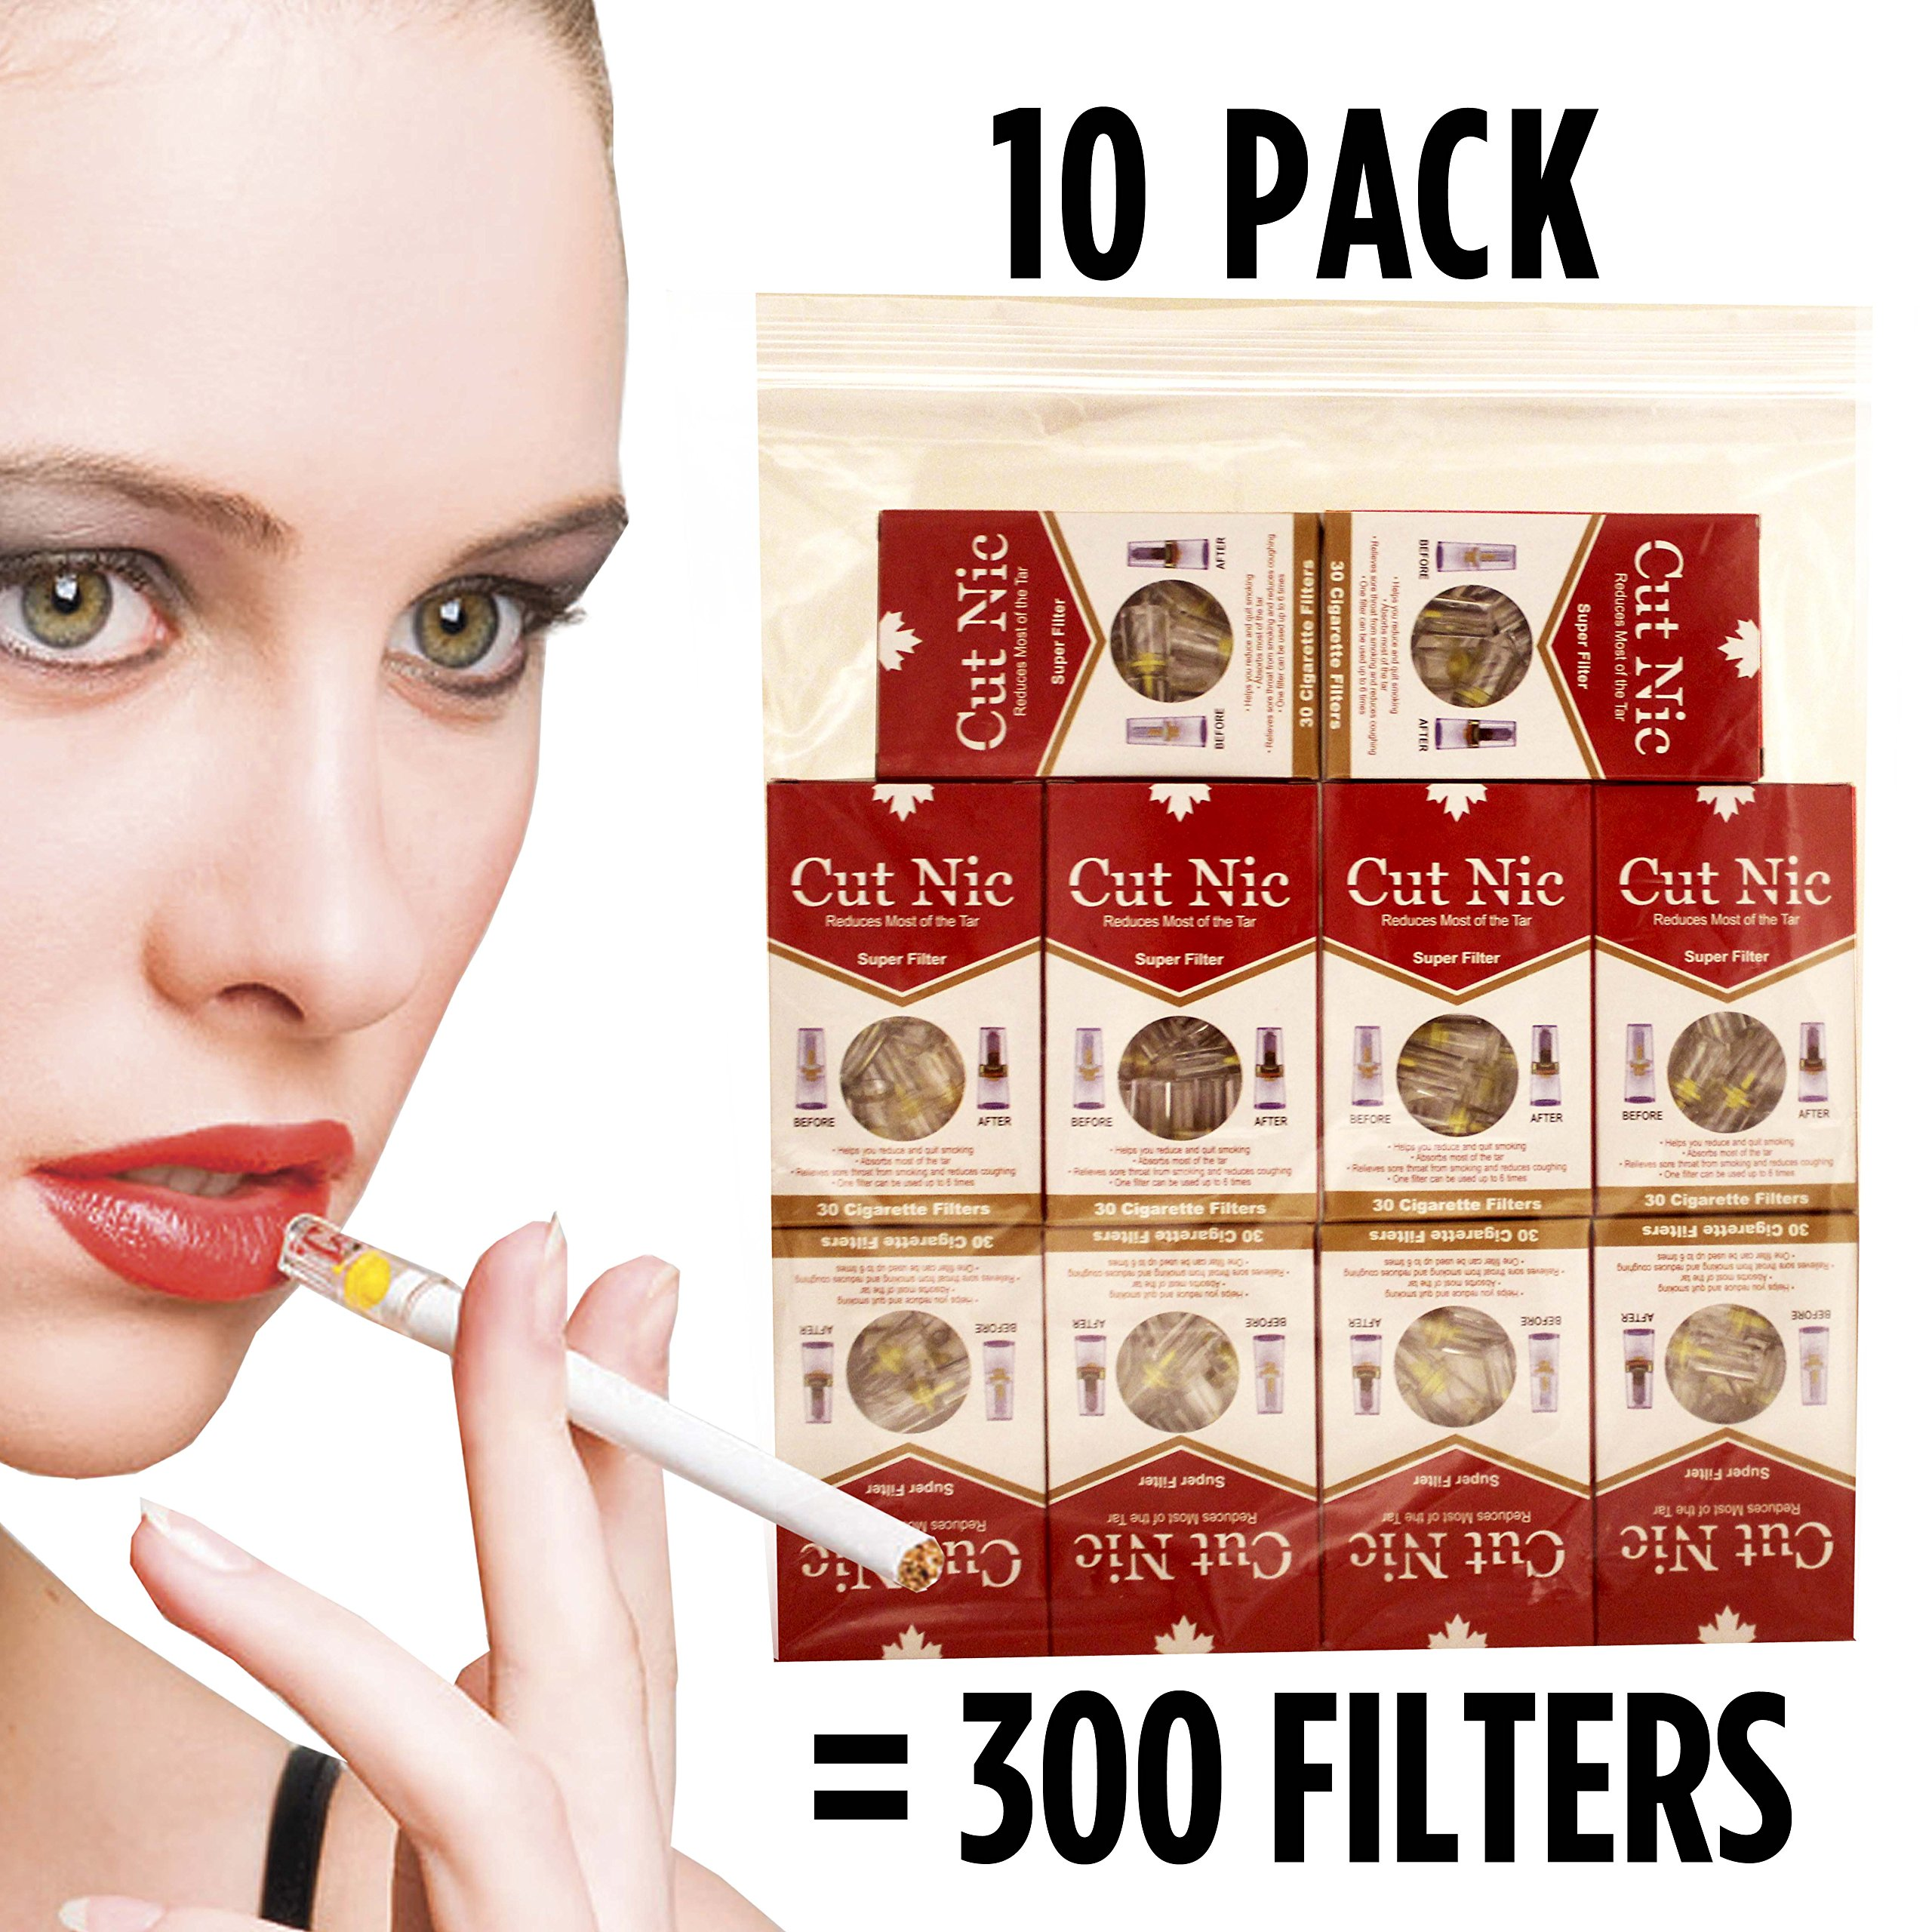 Cut-Nic 4 HOLE Cigarette Filters 10 Packs For Cigarette Smokers (300 Filters Total)